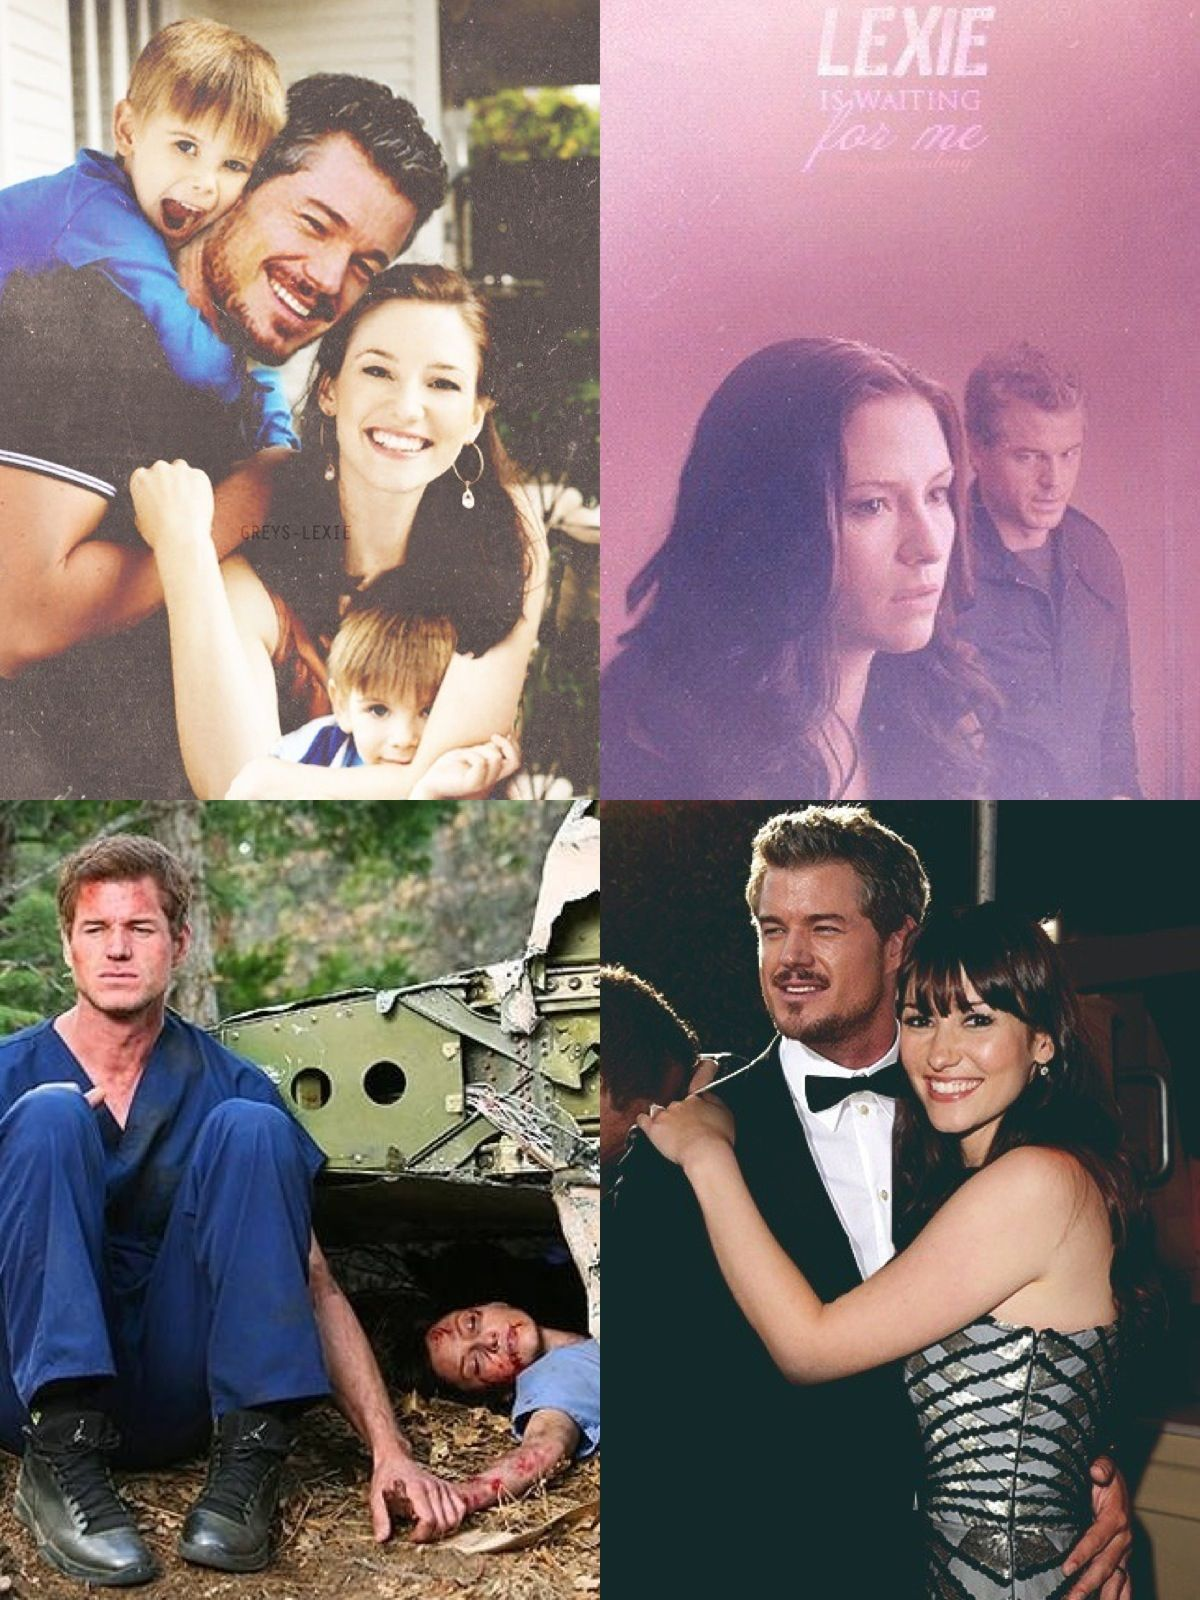 In loving memory of Mark Sloan and Lexie Grey. #Slexie #ThisHurts ...